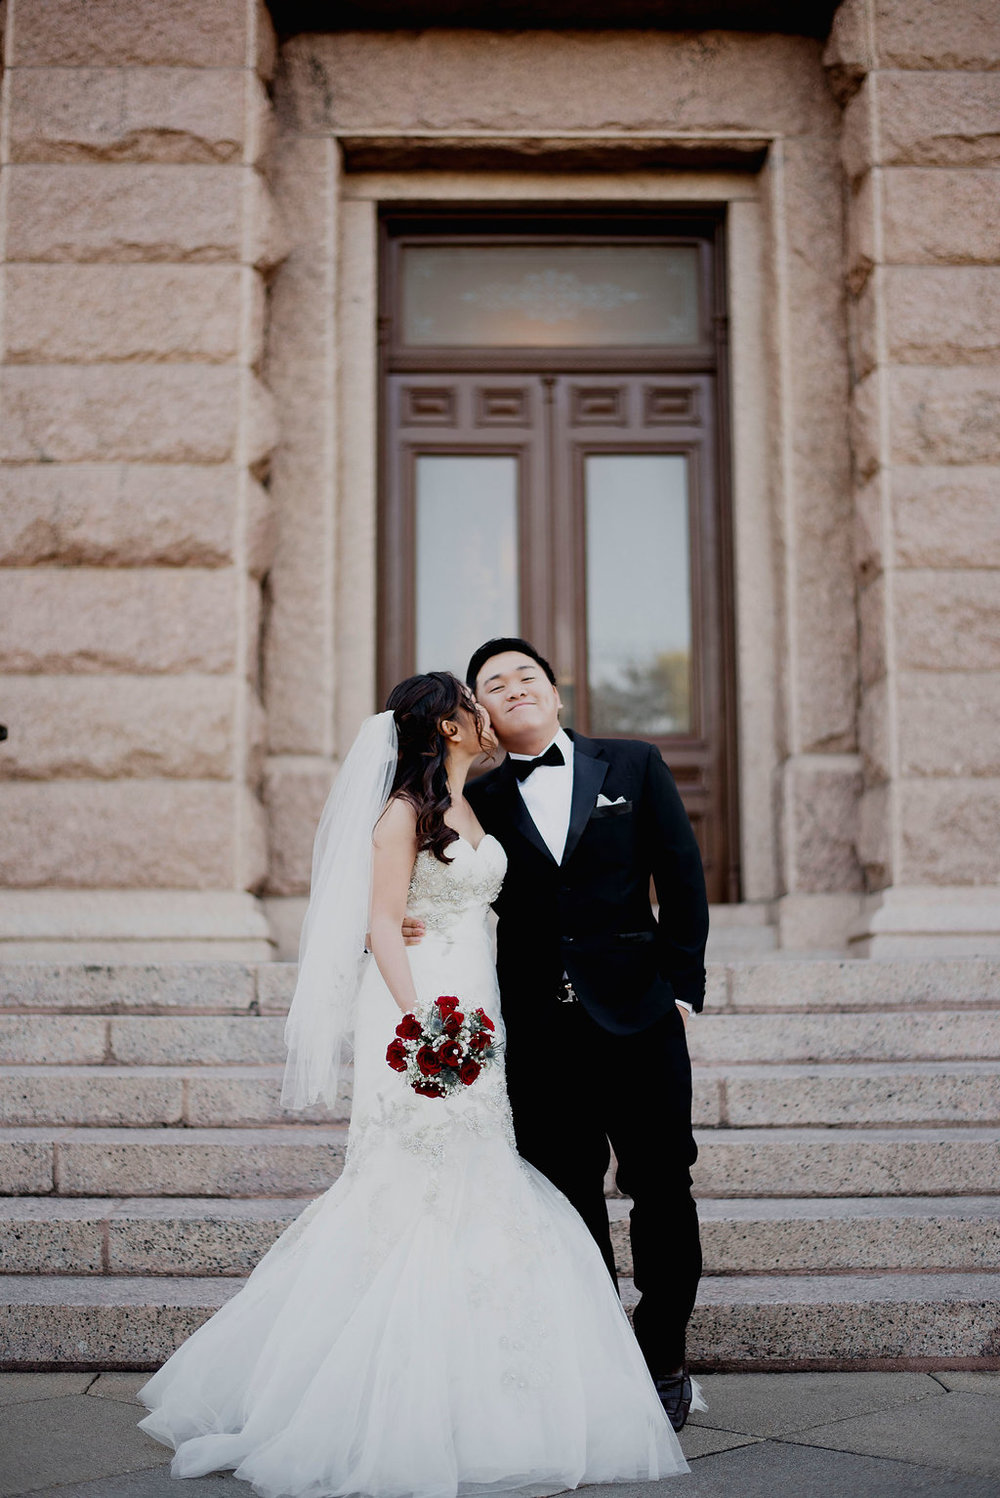 Austin Pre Wedding Portraits Photographer Texas State Capitol Zilker Botanical Gardens EffJay Photography013.jpg